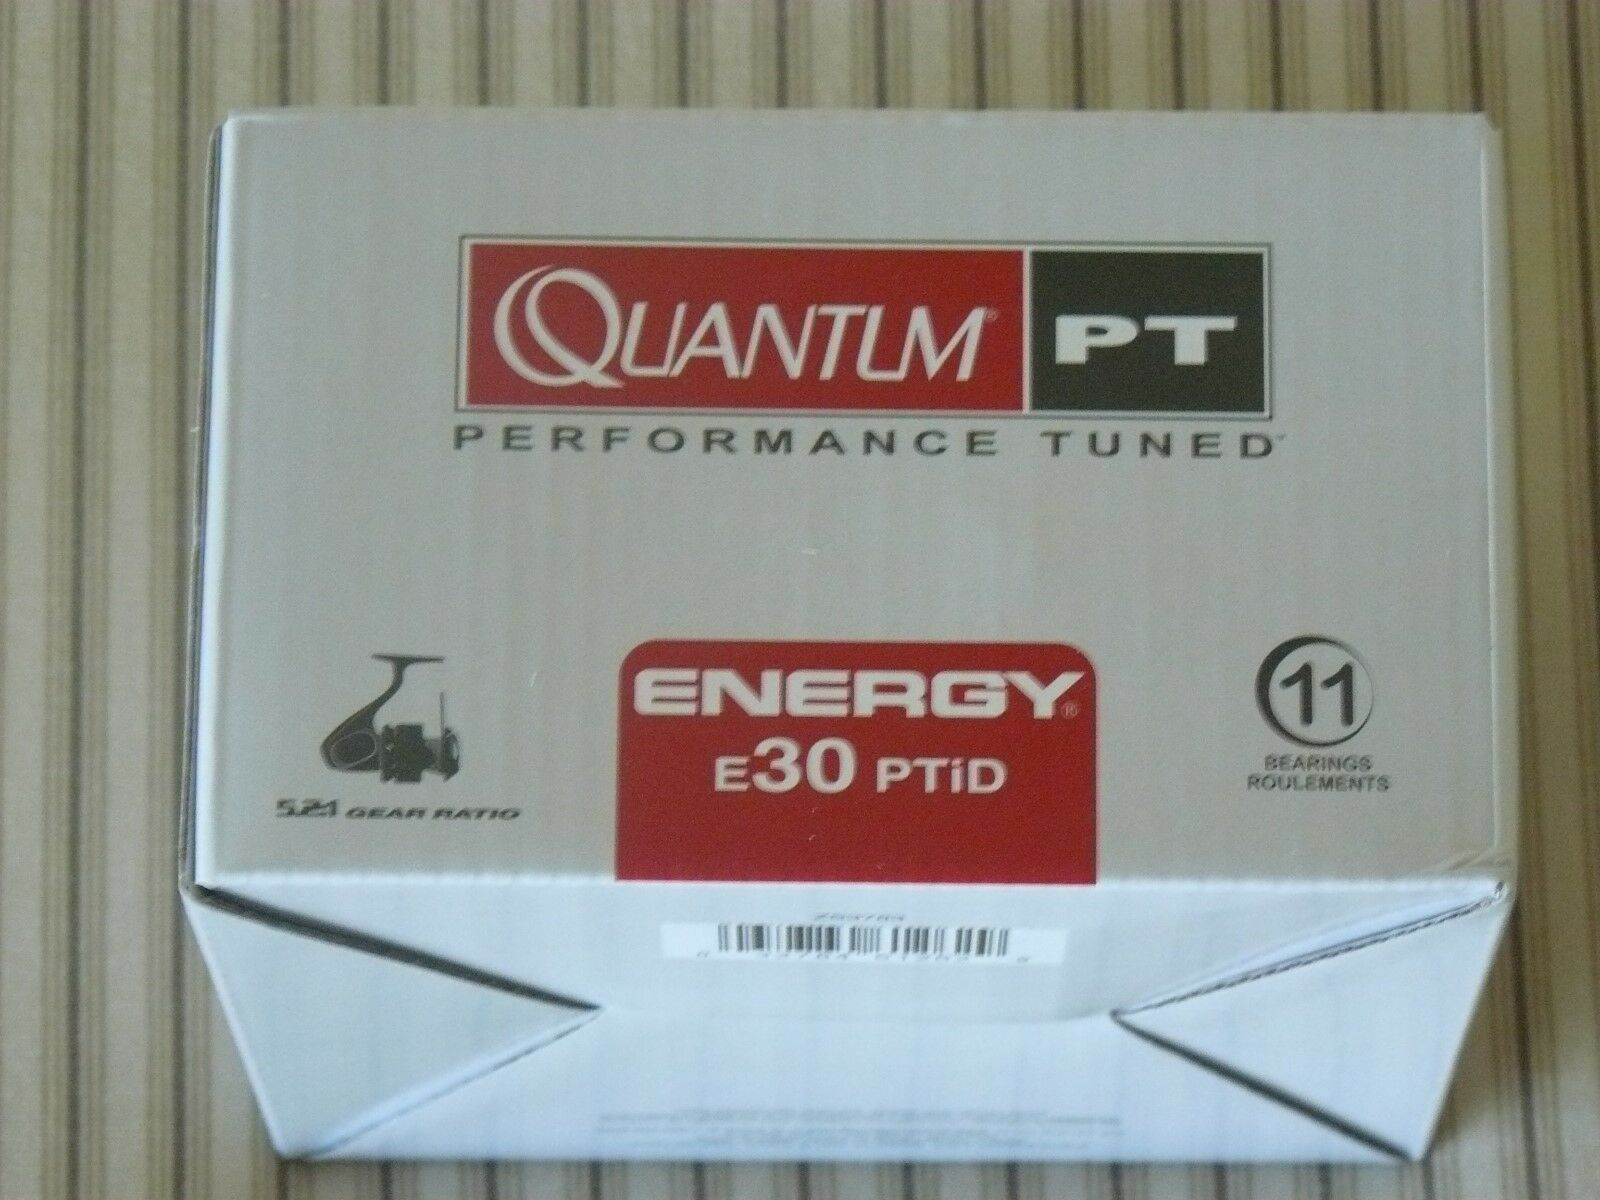 QUANTUM ENERGY E30PTID SPINNING 5.2:1 GEAR RATIO SPINNING E30PTID REEL f72c08